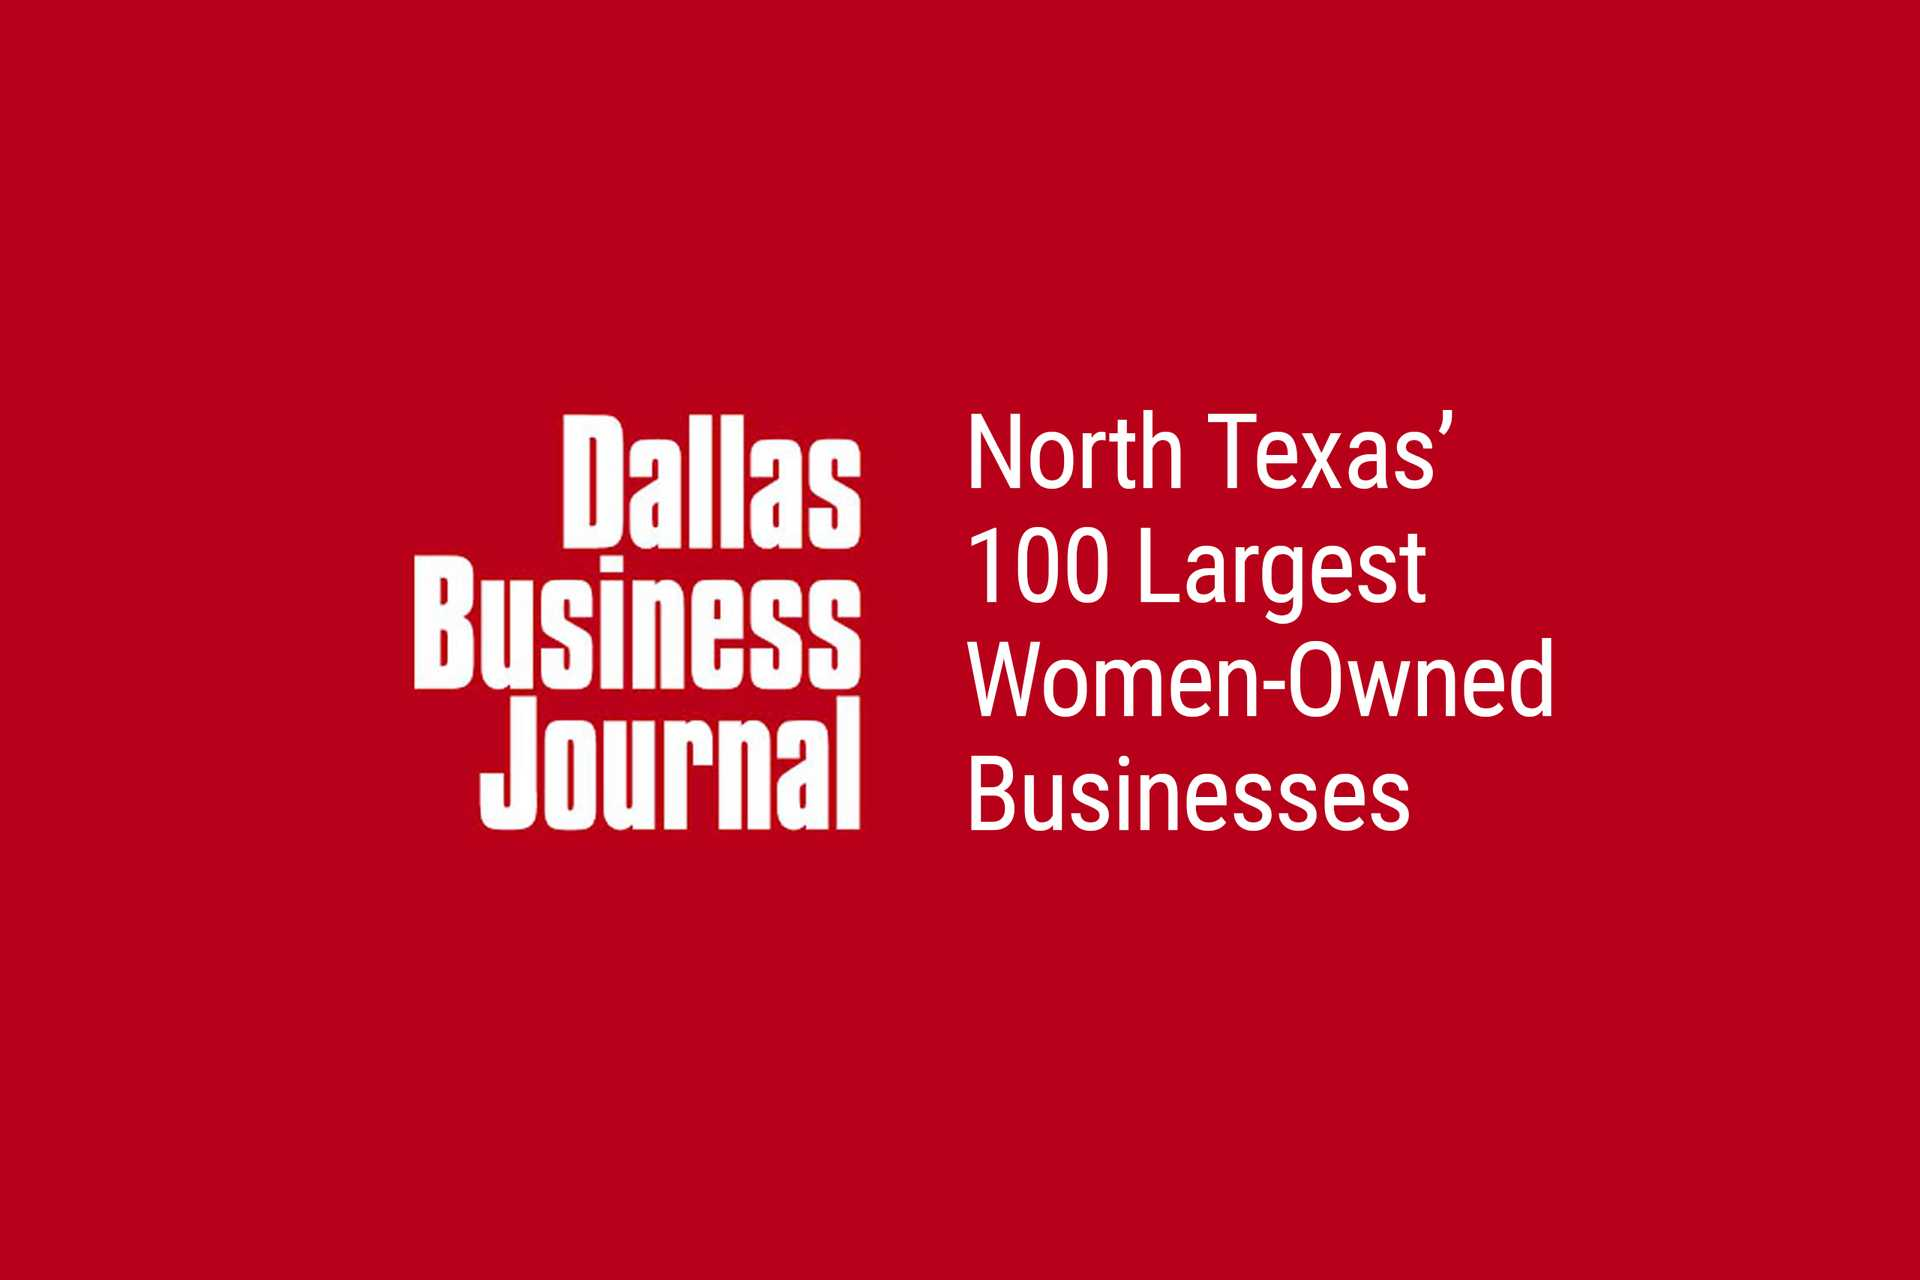 Dallas Business Journal North Texas' 100 Largest Women-Owned Businesses on red pinstripe background